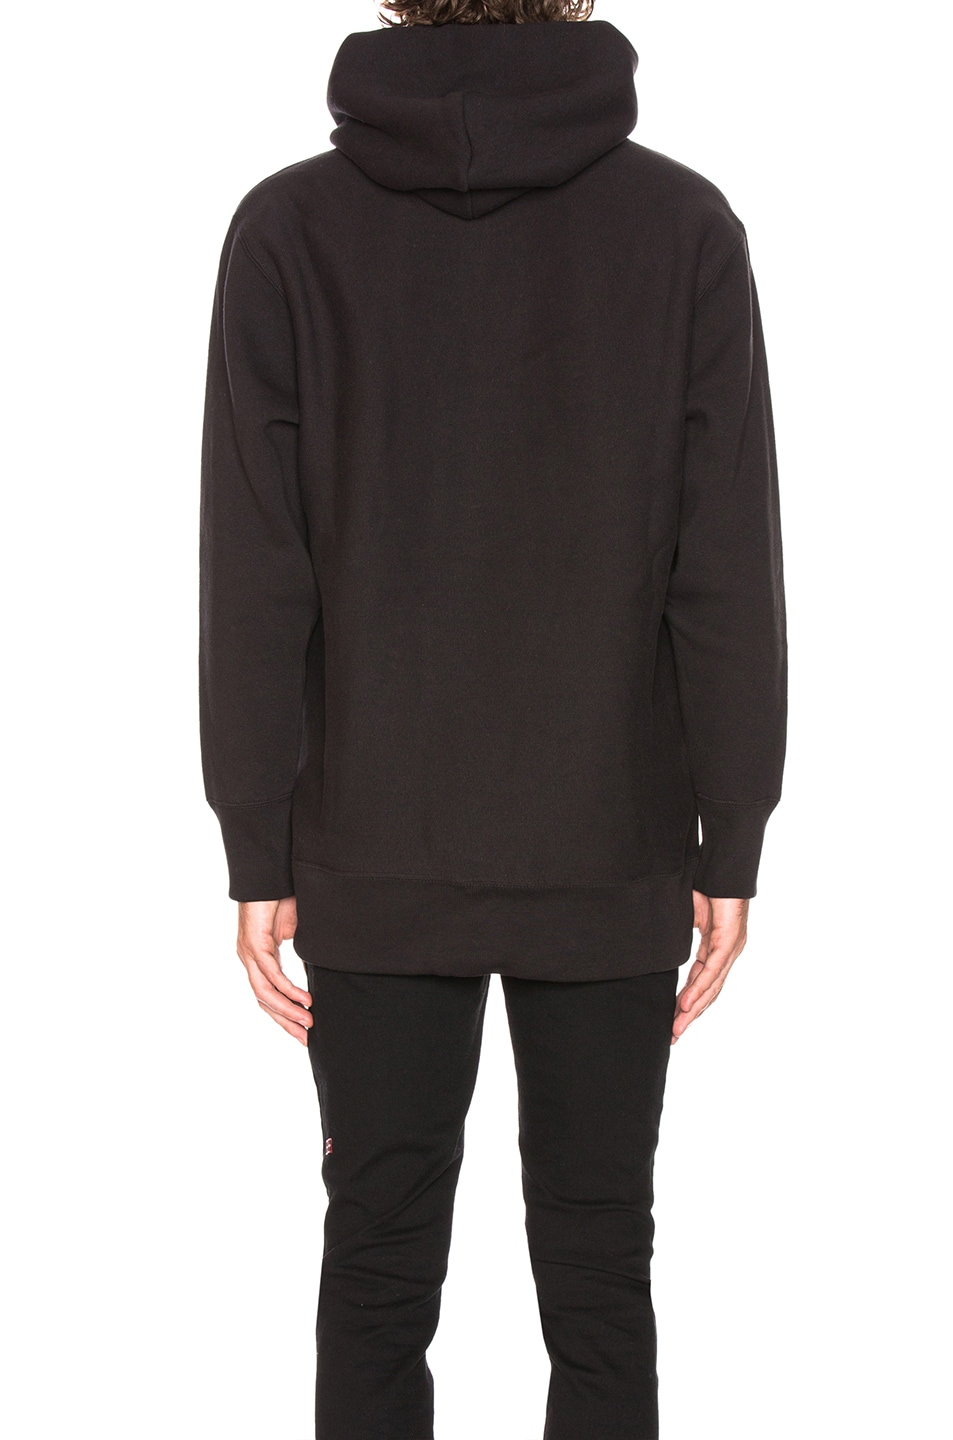 Image 3 of Champion Reverse Weave Oversized Hooded Sweatshirt in Black